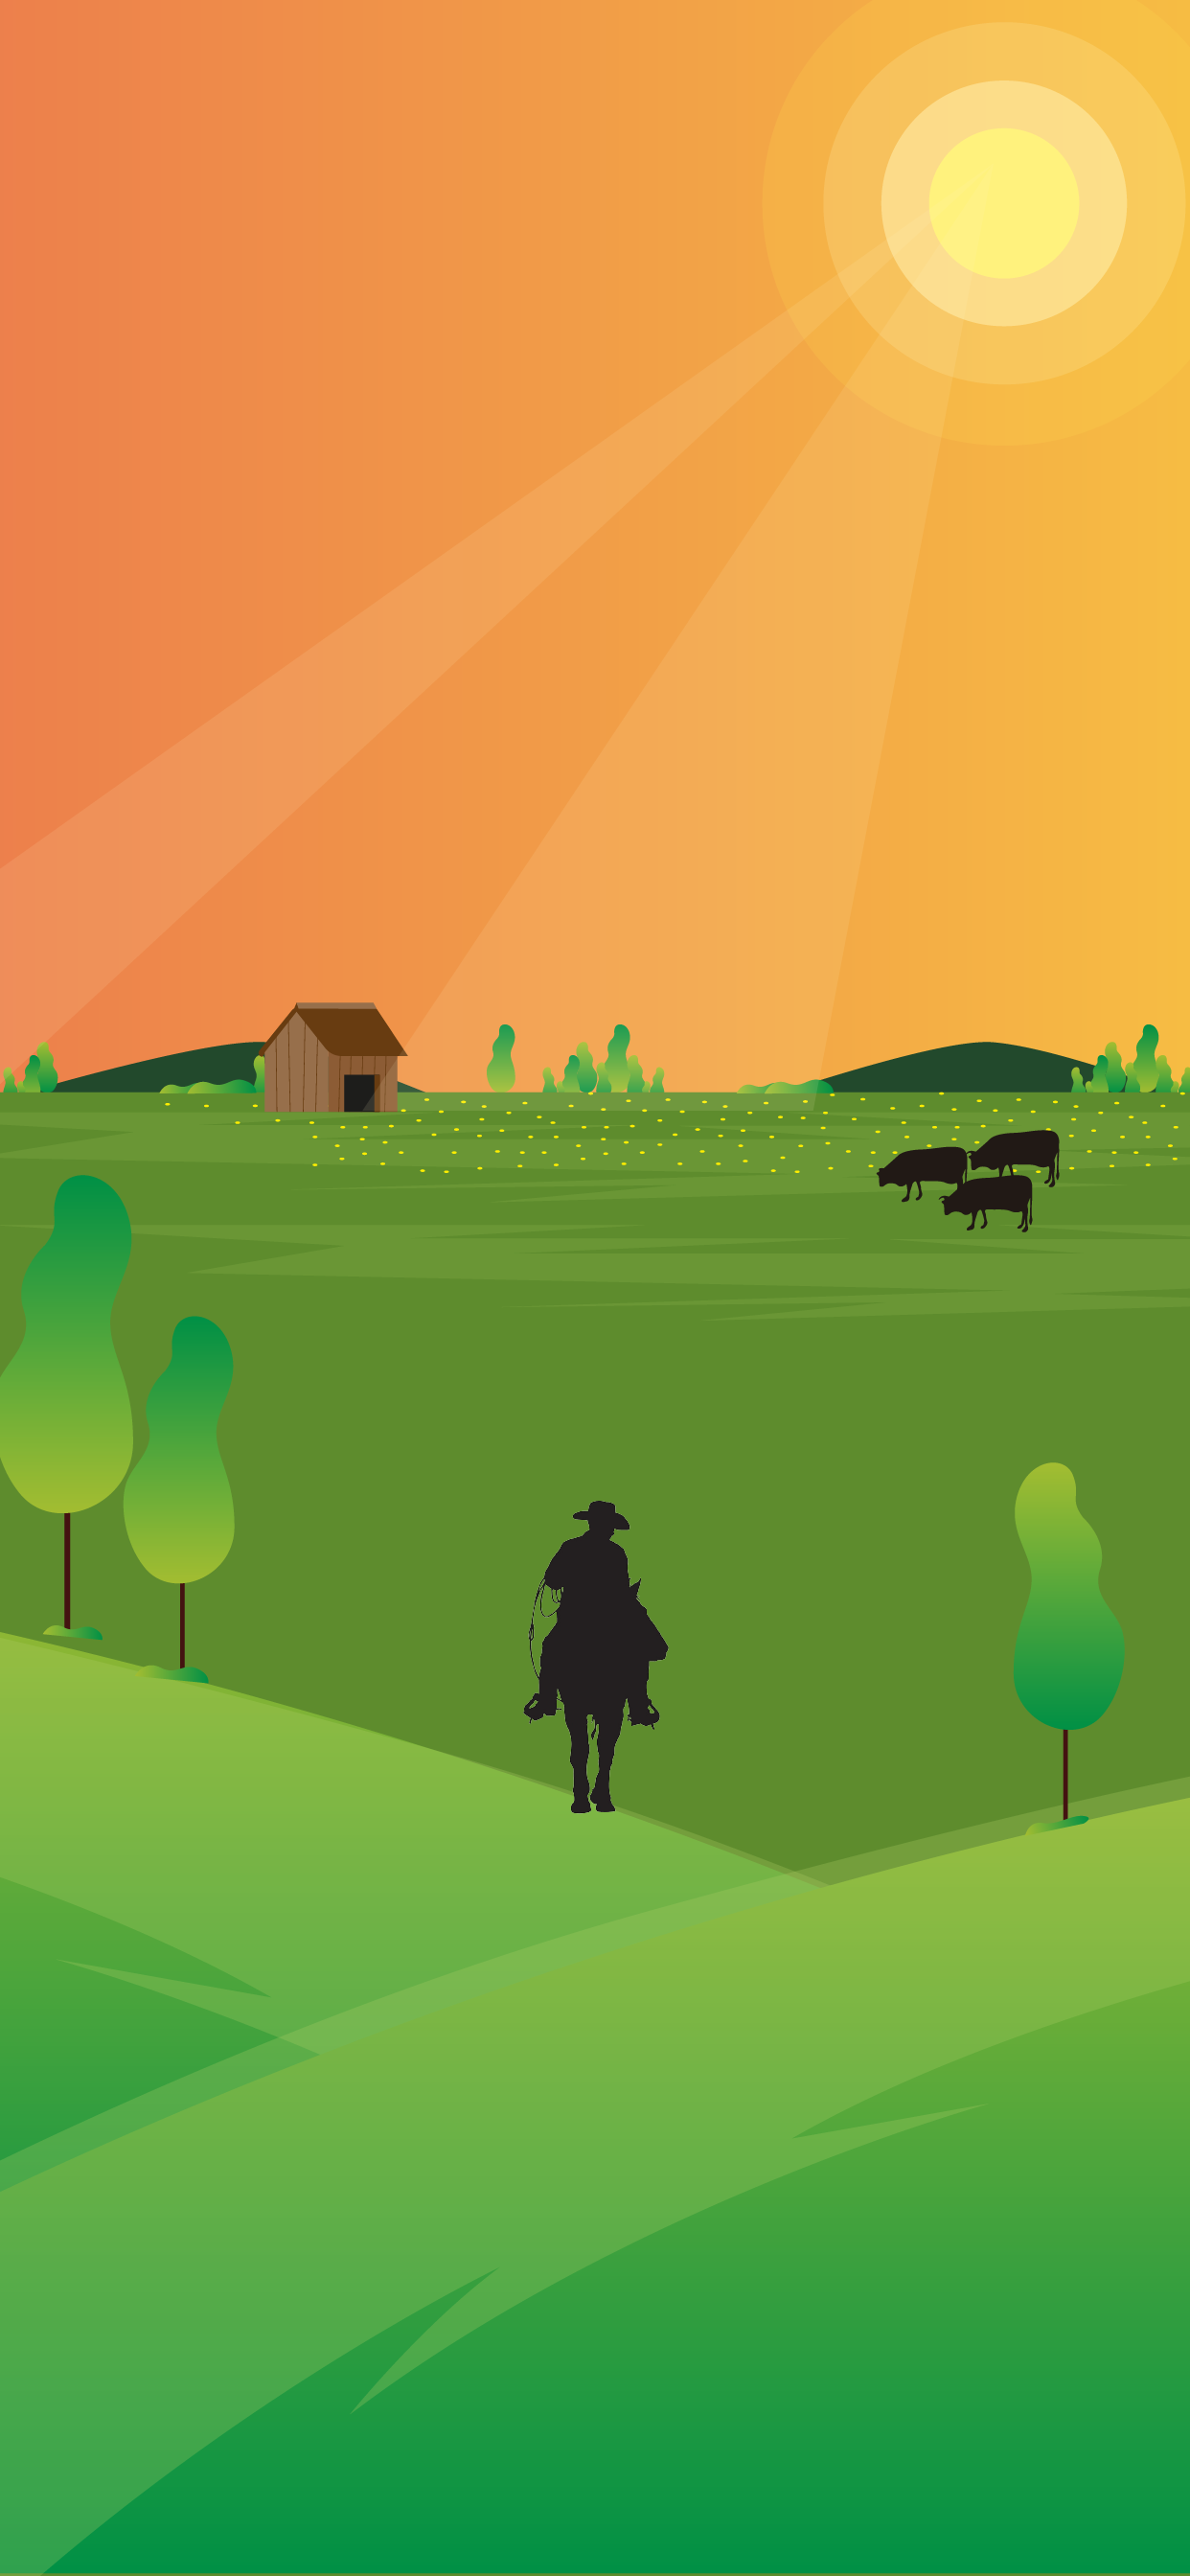 Beautiful farm wallpaper of a cowboy silhuete in a minimalist style papel de parede fondo de pantala